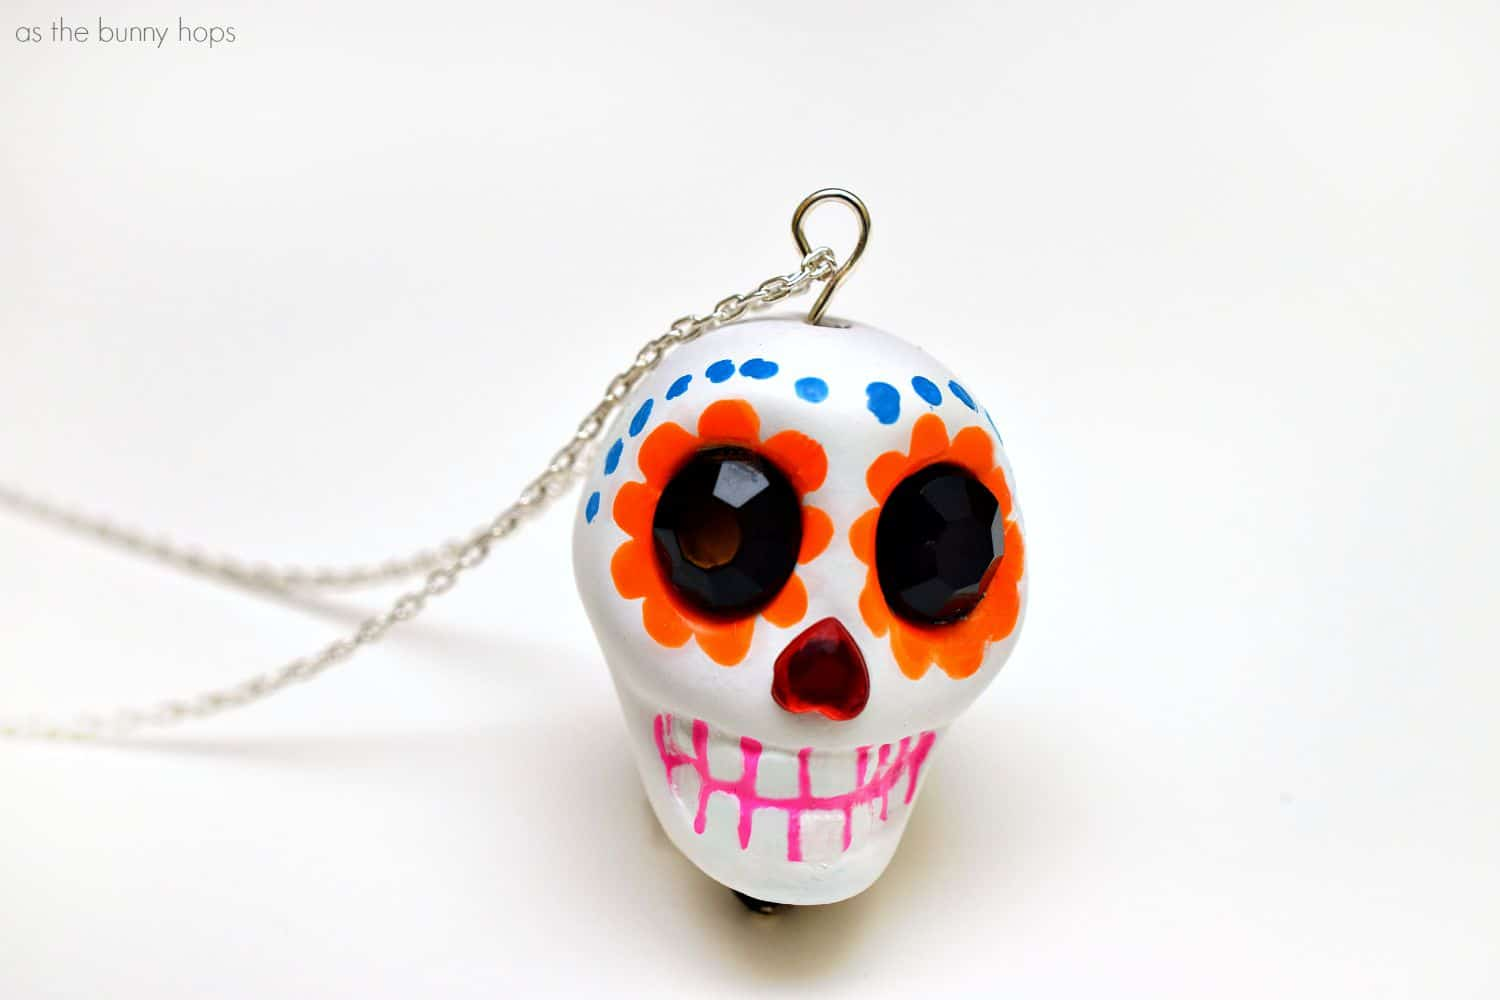 products dktdesigns image women cord pendant skull or men on sugar necklace for